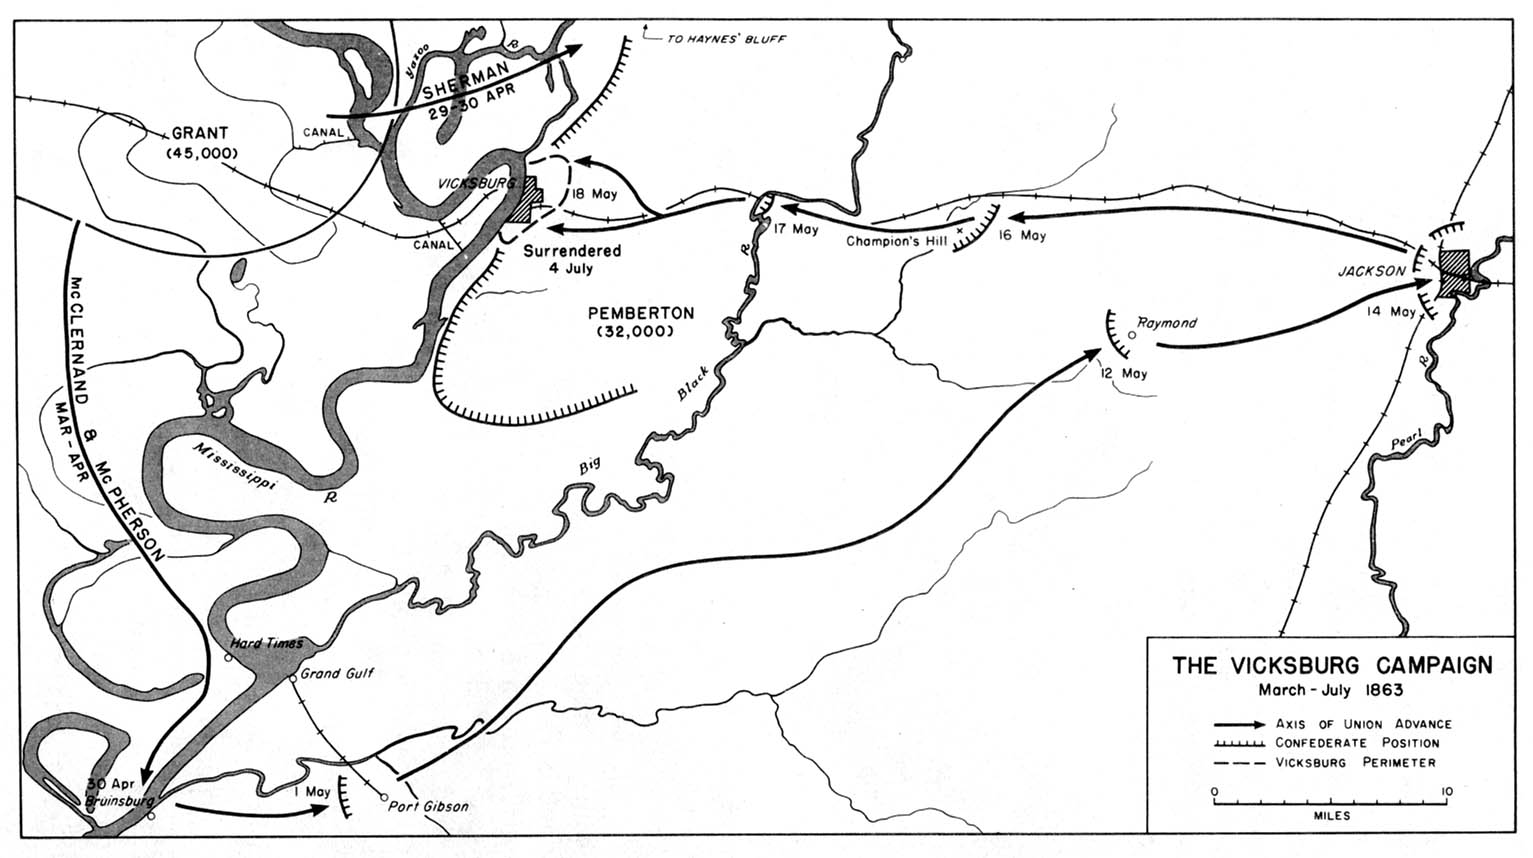 Map of the Vicksburg Campaign, American Civil War,  March-July 1863